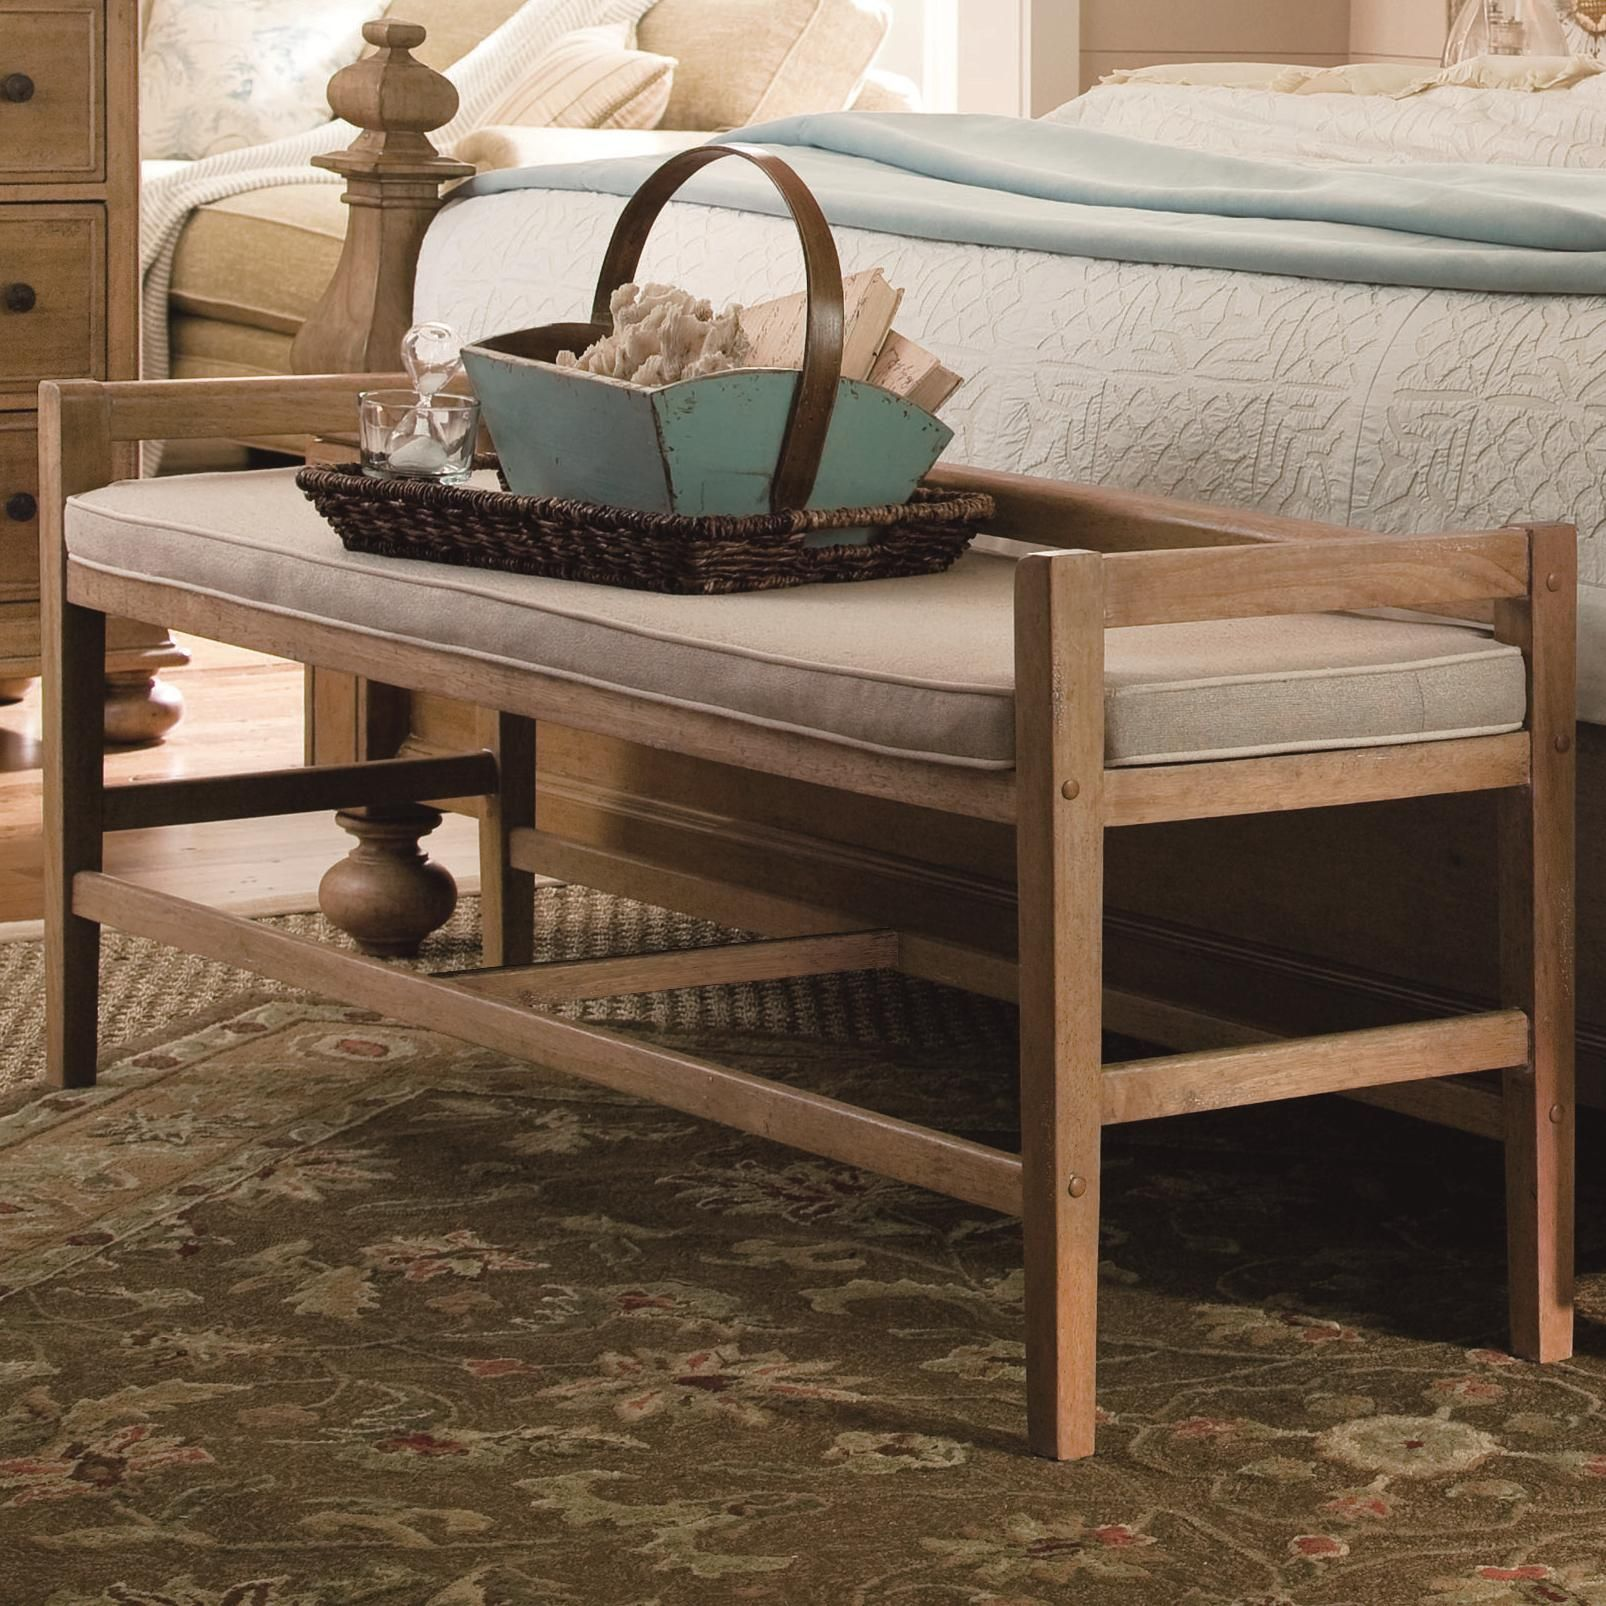 Down Home Bed Bench By Paula Deen By Universal Furniture Home